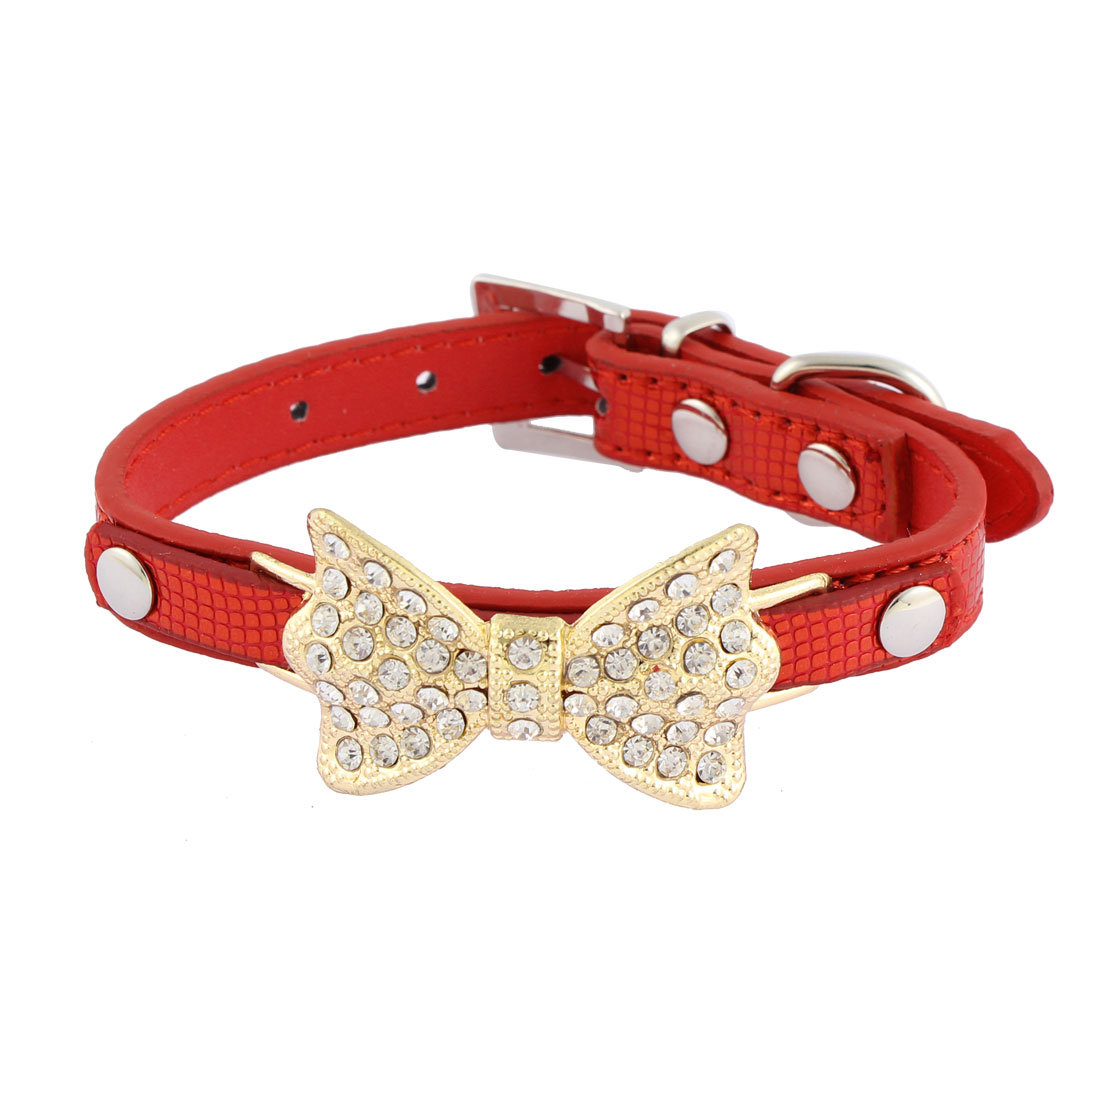 Alligator Pattern Bow Detail Rhinestone Decor Pet Dog Kitty Collar 21.5-28cm Red